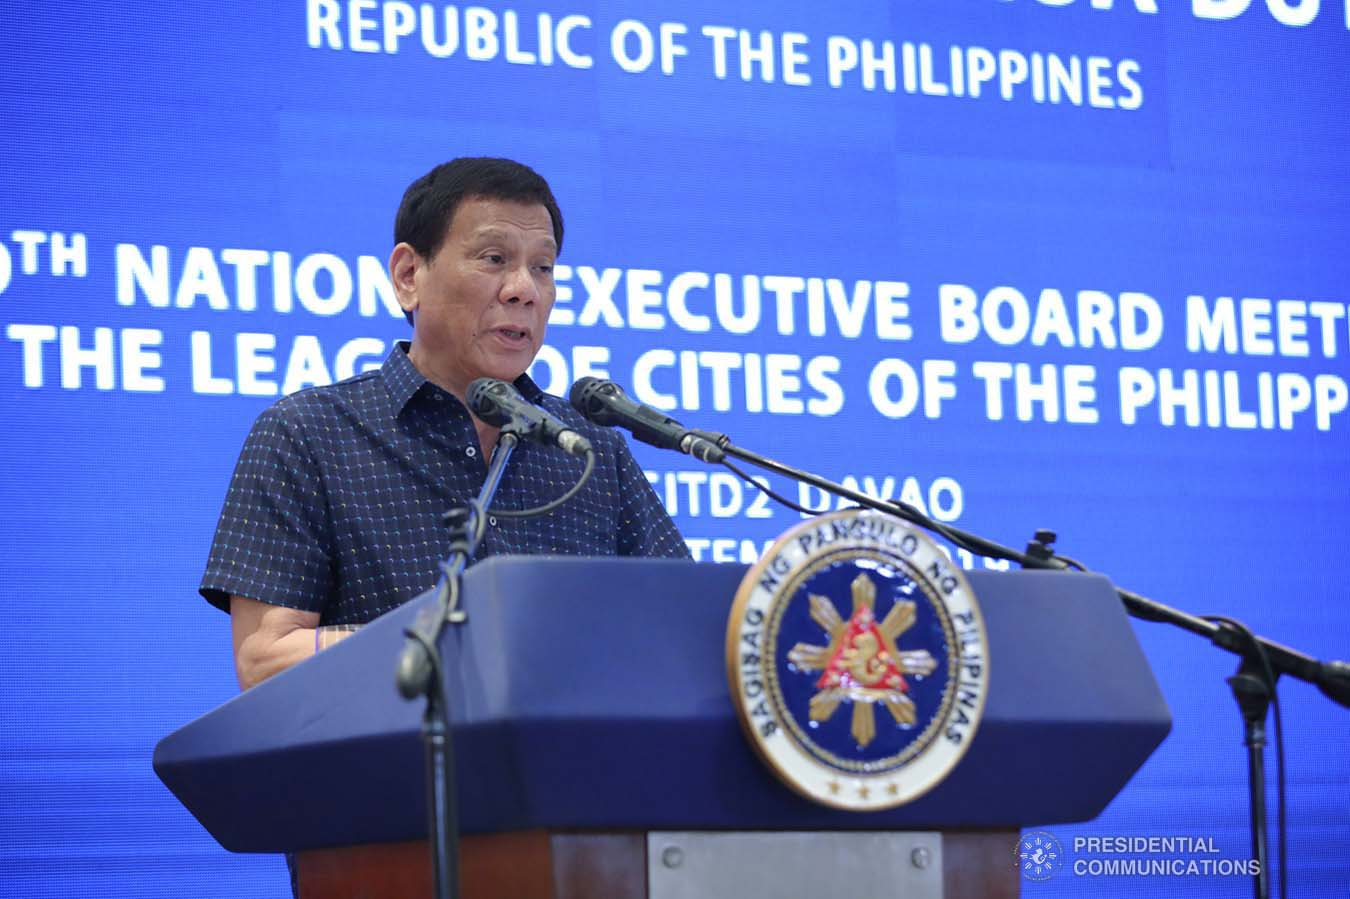 President Rodrigo Roa Duterte delivers his speech during the 69th National Executive Board Meeting of the League of Cities of the Philippines at the DusitD2 Davao Hotel in Davao City on September 27, 2019. ROBINSON NIÑAL JR./PRESIDENTIAL PHOTO